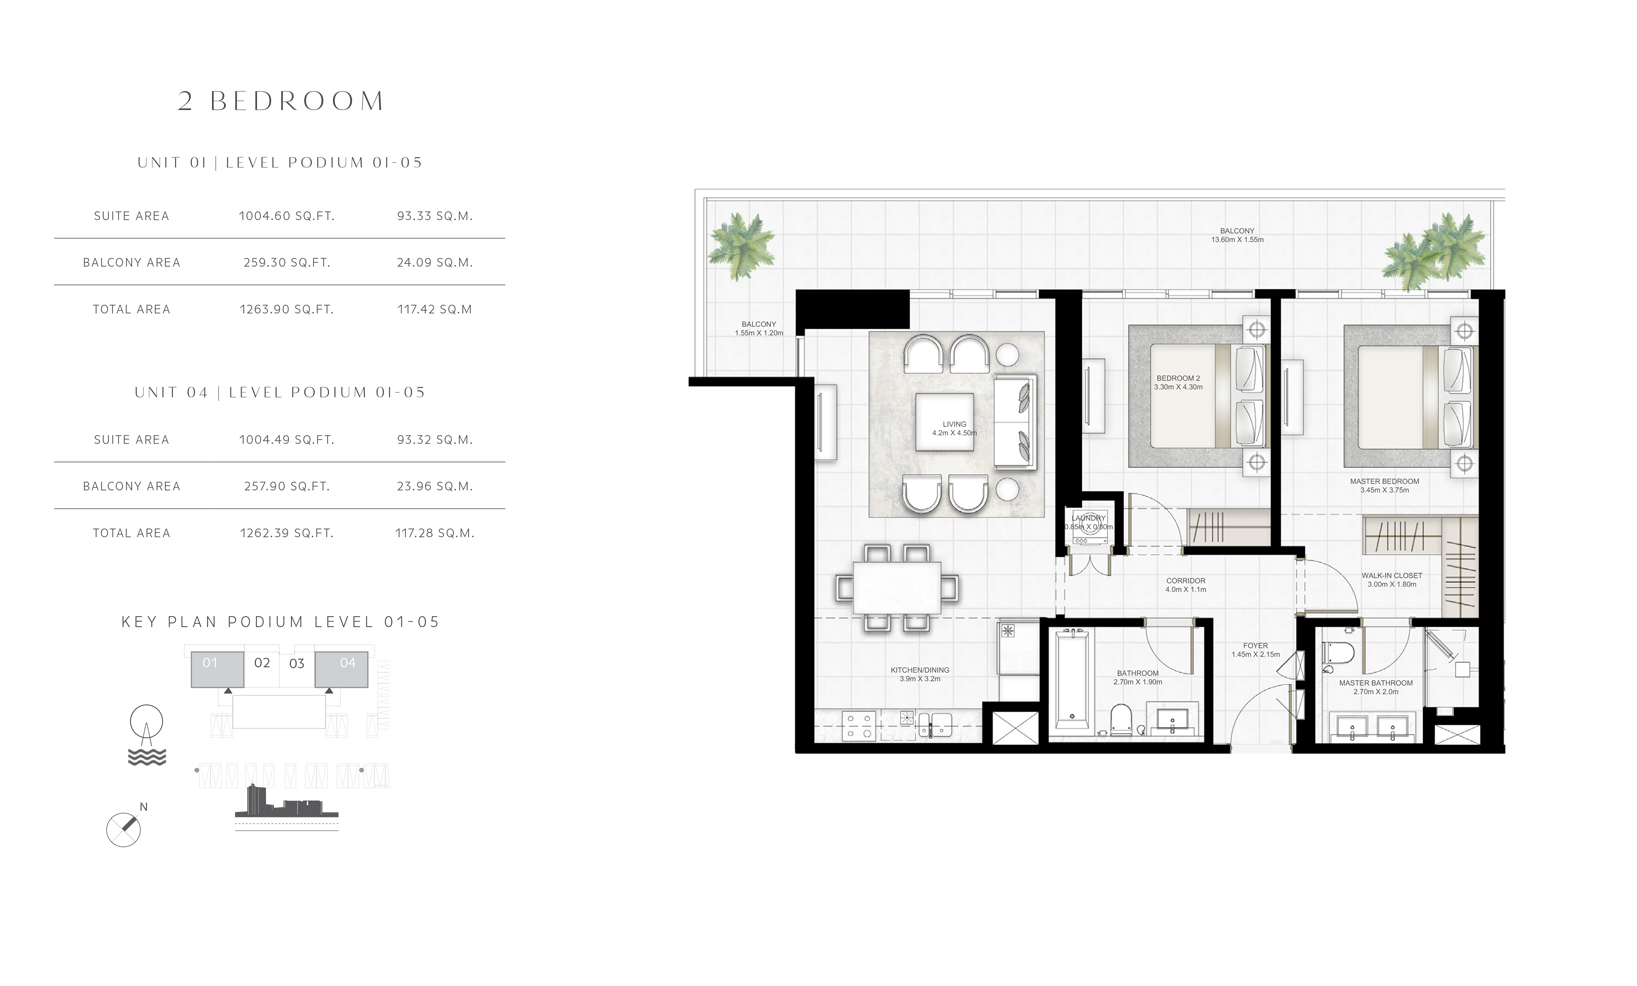 2 Bedroom Unit 01 Level 01 to 05 Size 1263.90 sq.ft